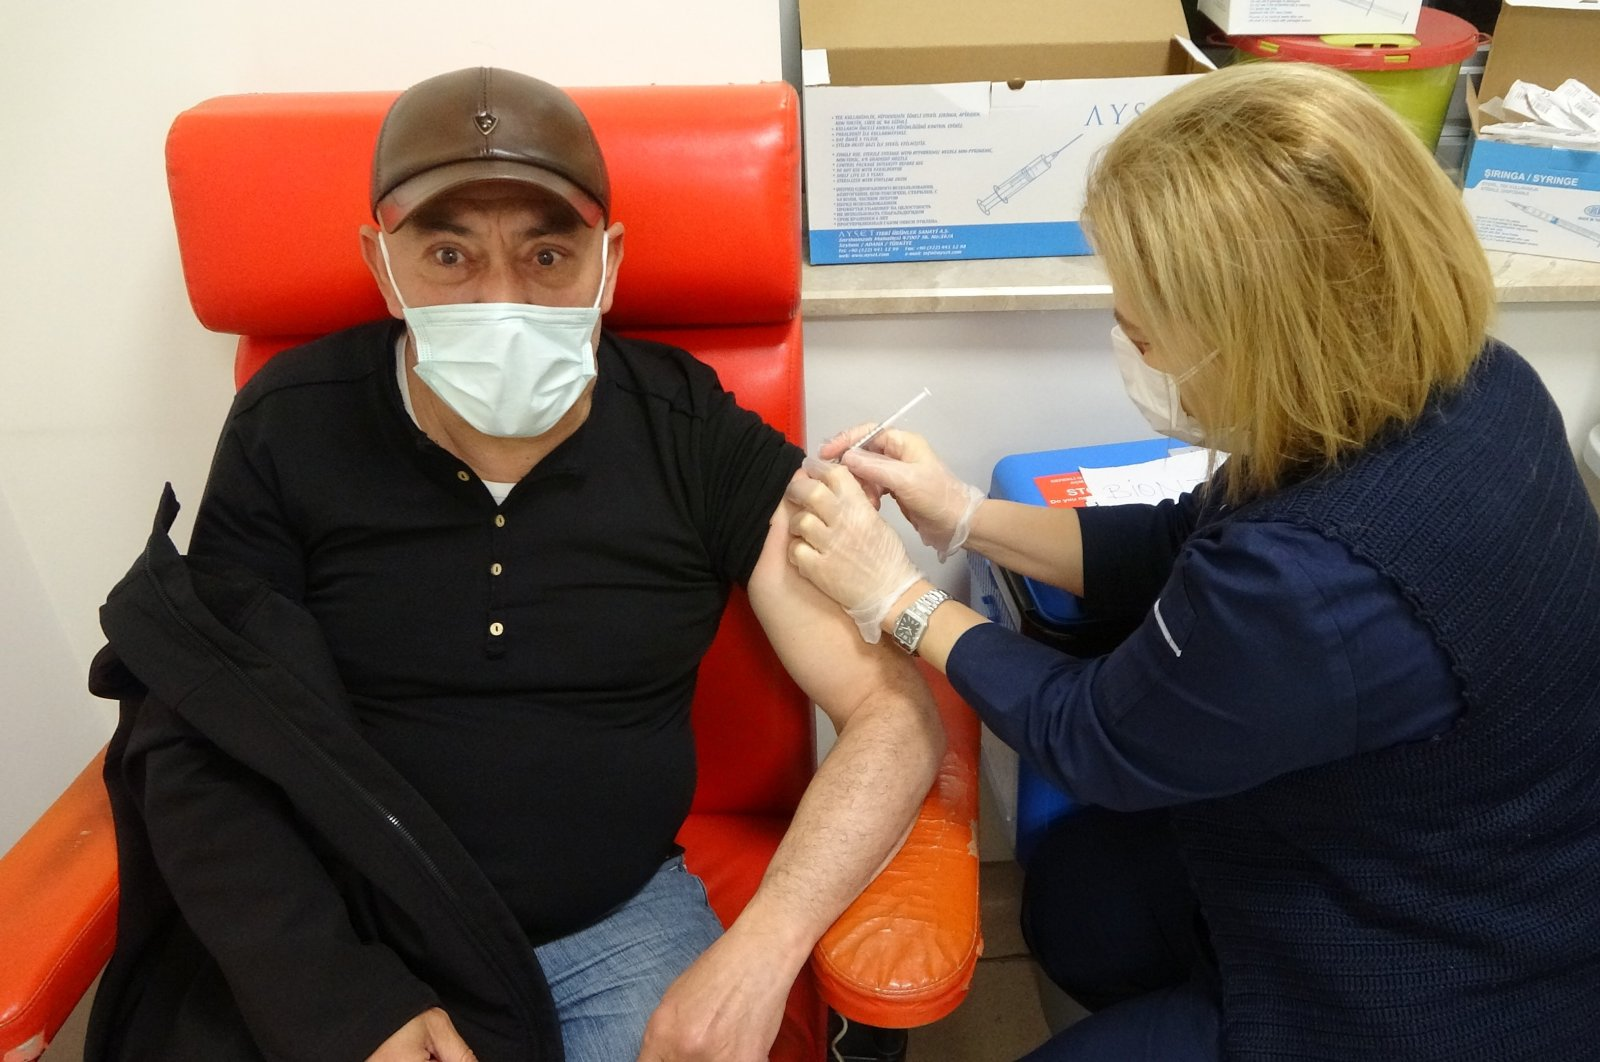 A man is vaccinated at a hospital in Çorum, central Turkey, April 26, 2021. (İHA PHOTO)